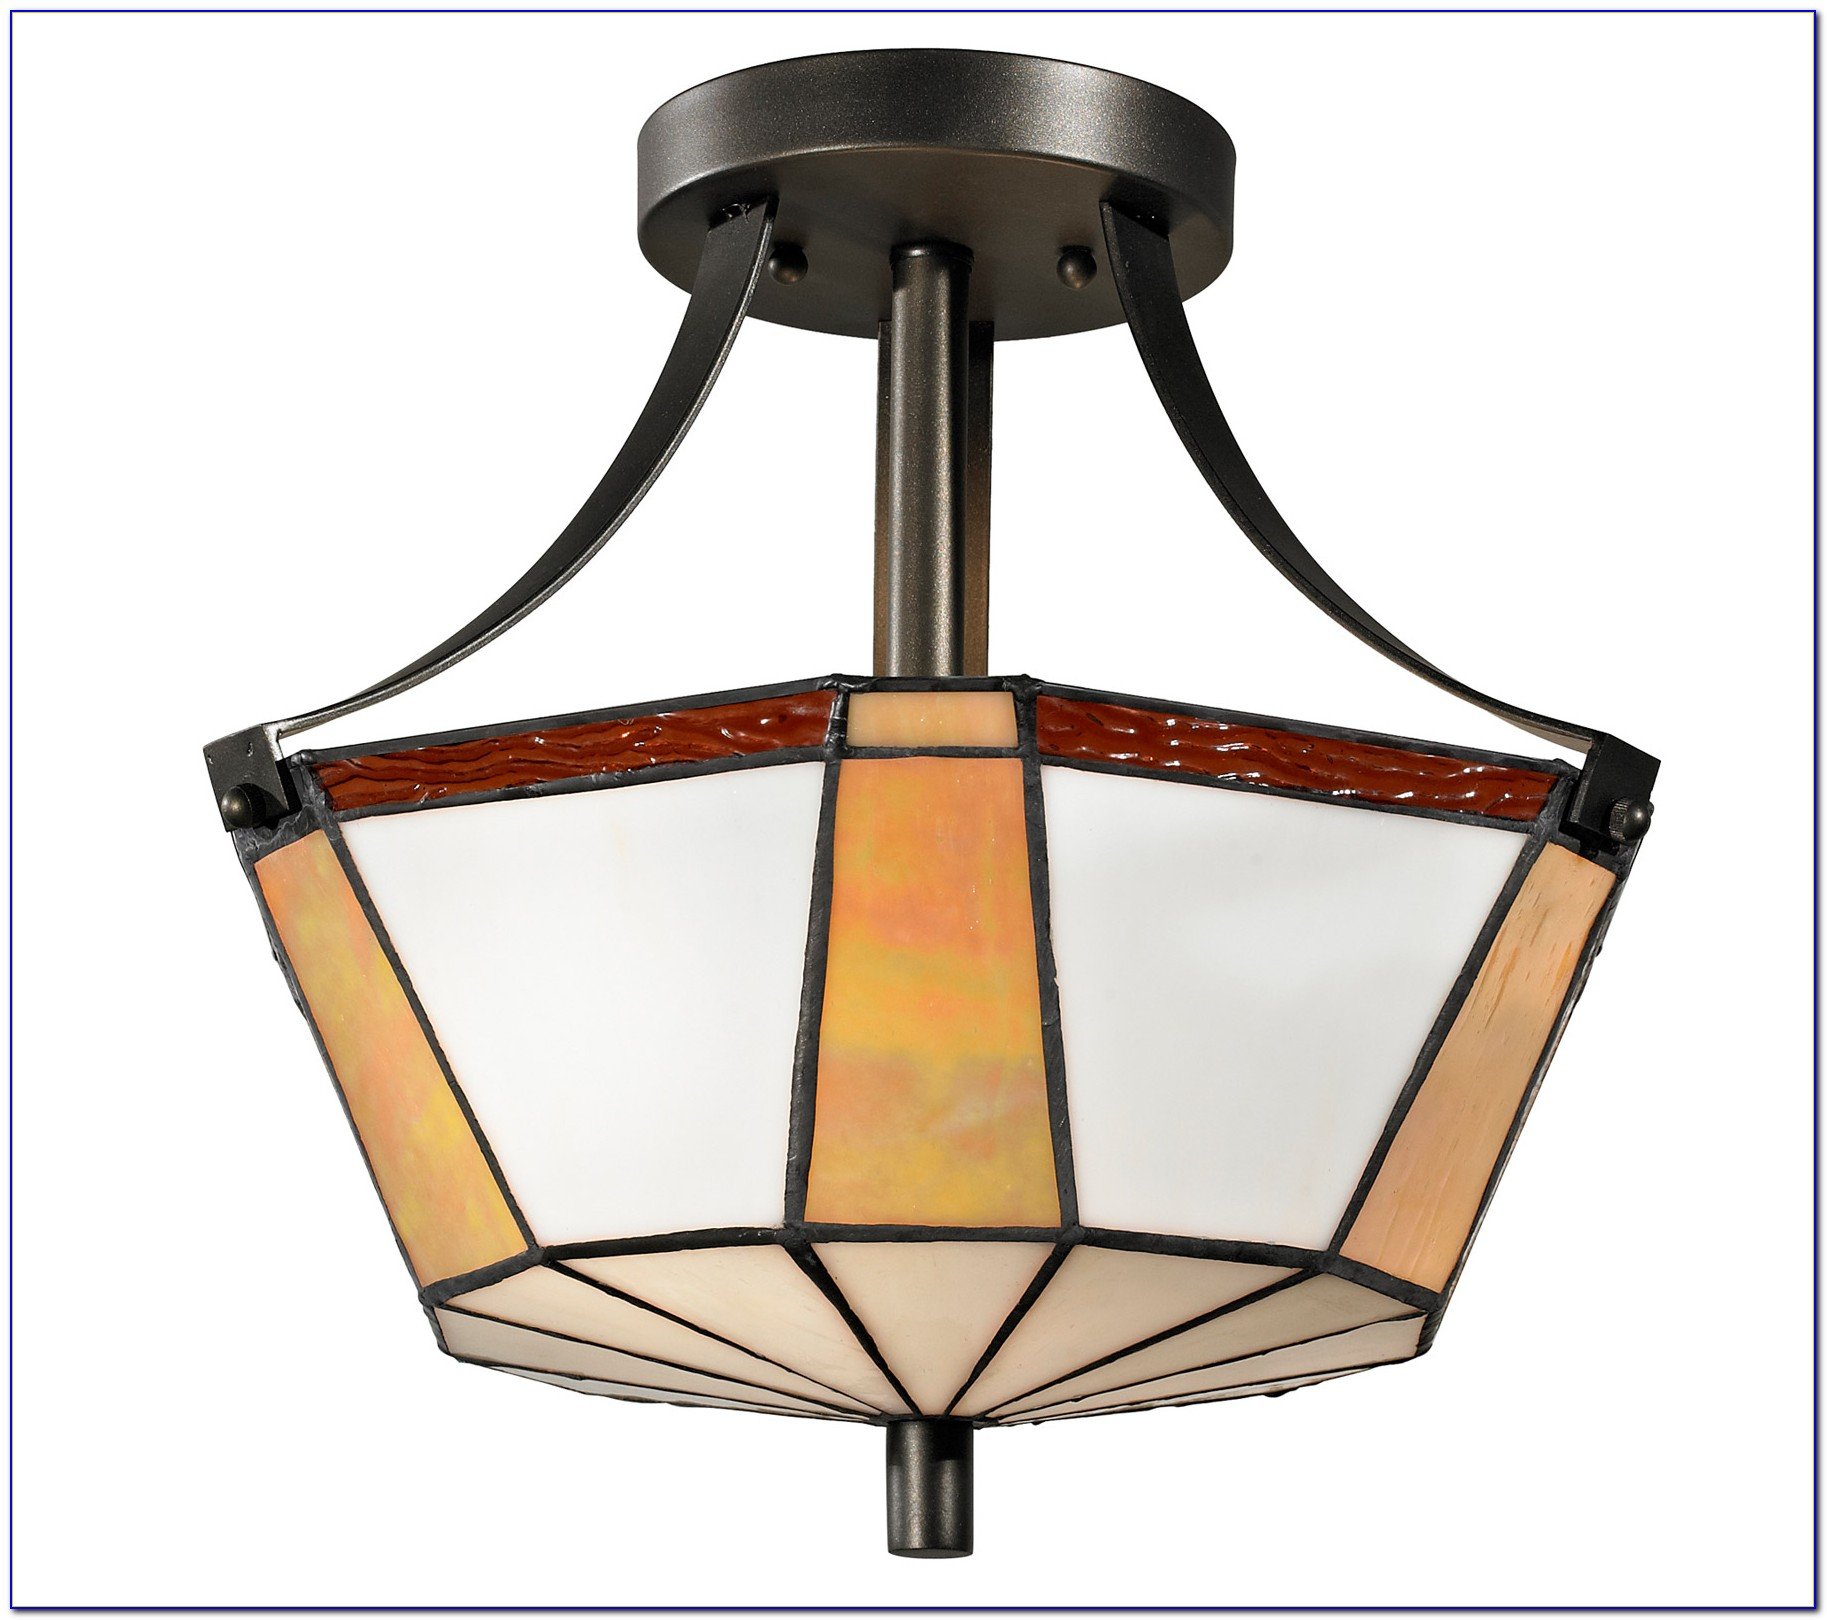 Meyda Tiffany Flush Mount Ceiling Light